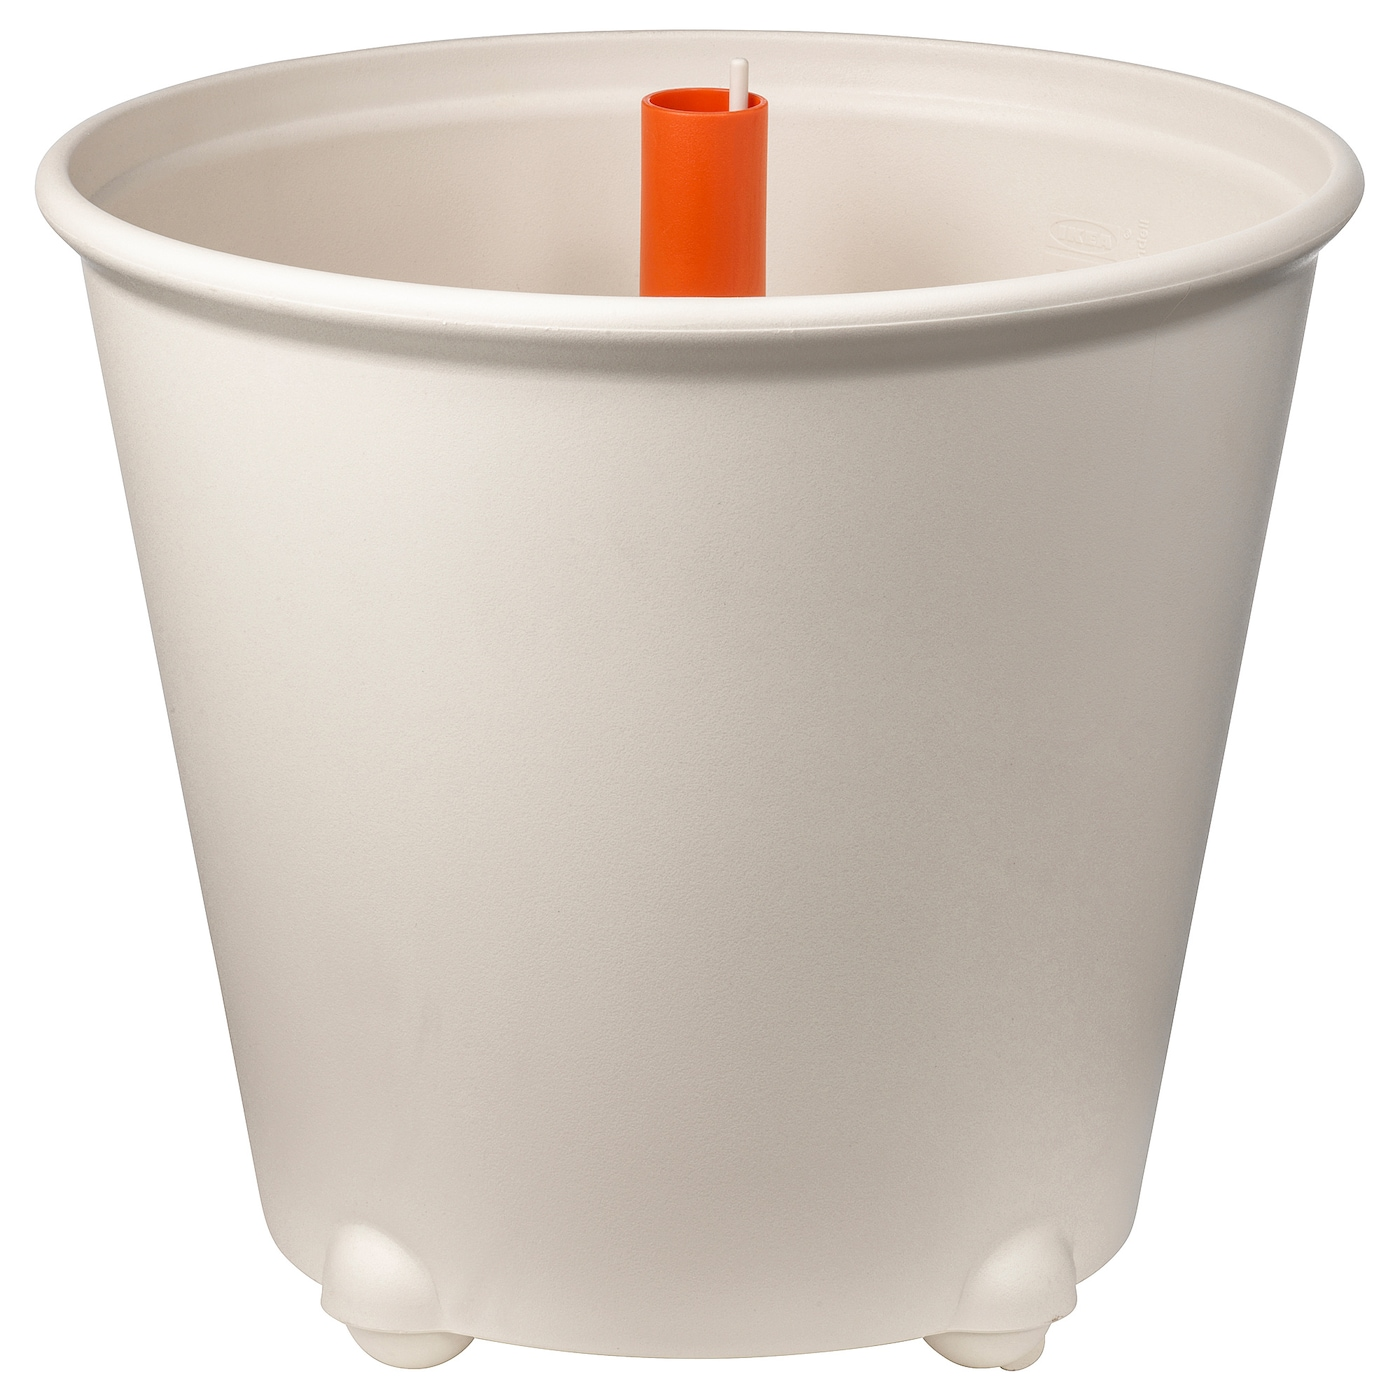 IKEA IKEA PS FEJÖ self-watering plant pot The self-watering insert keeps the soil moist.